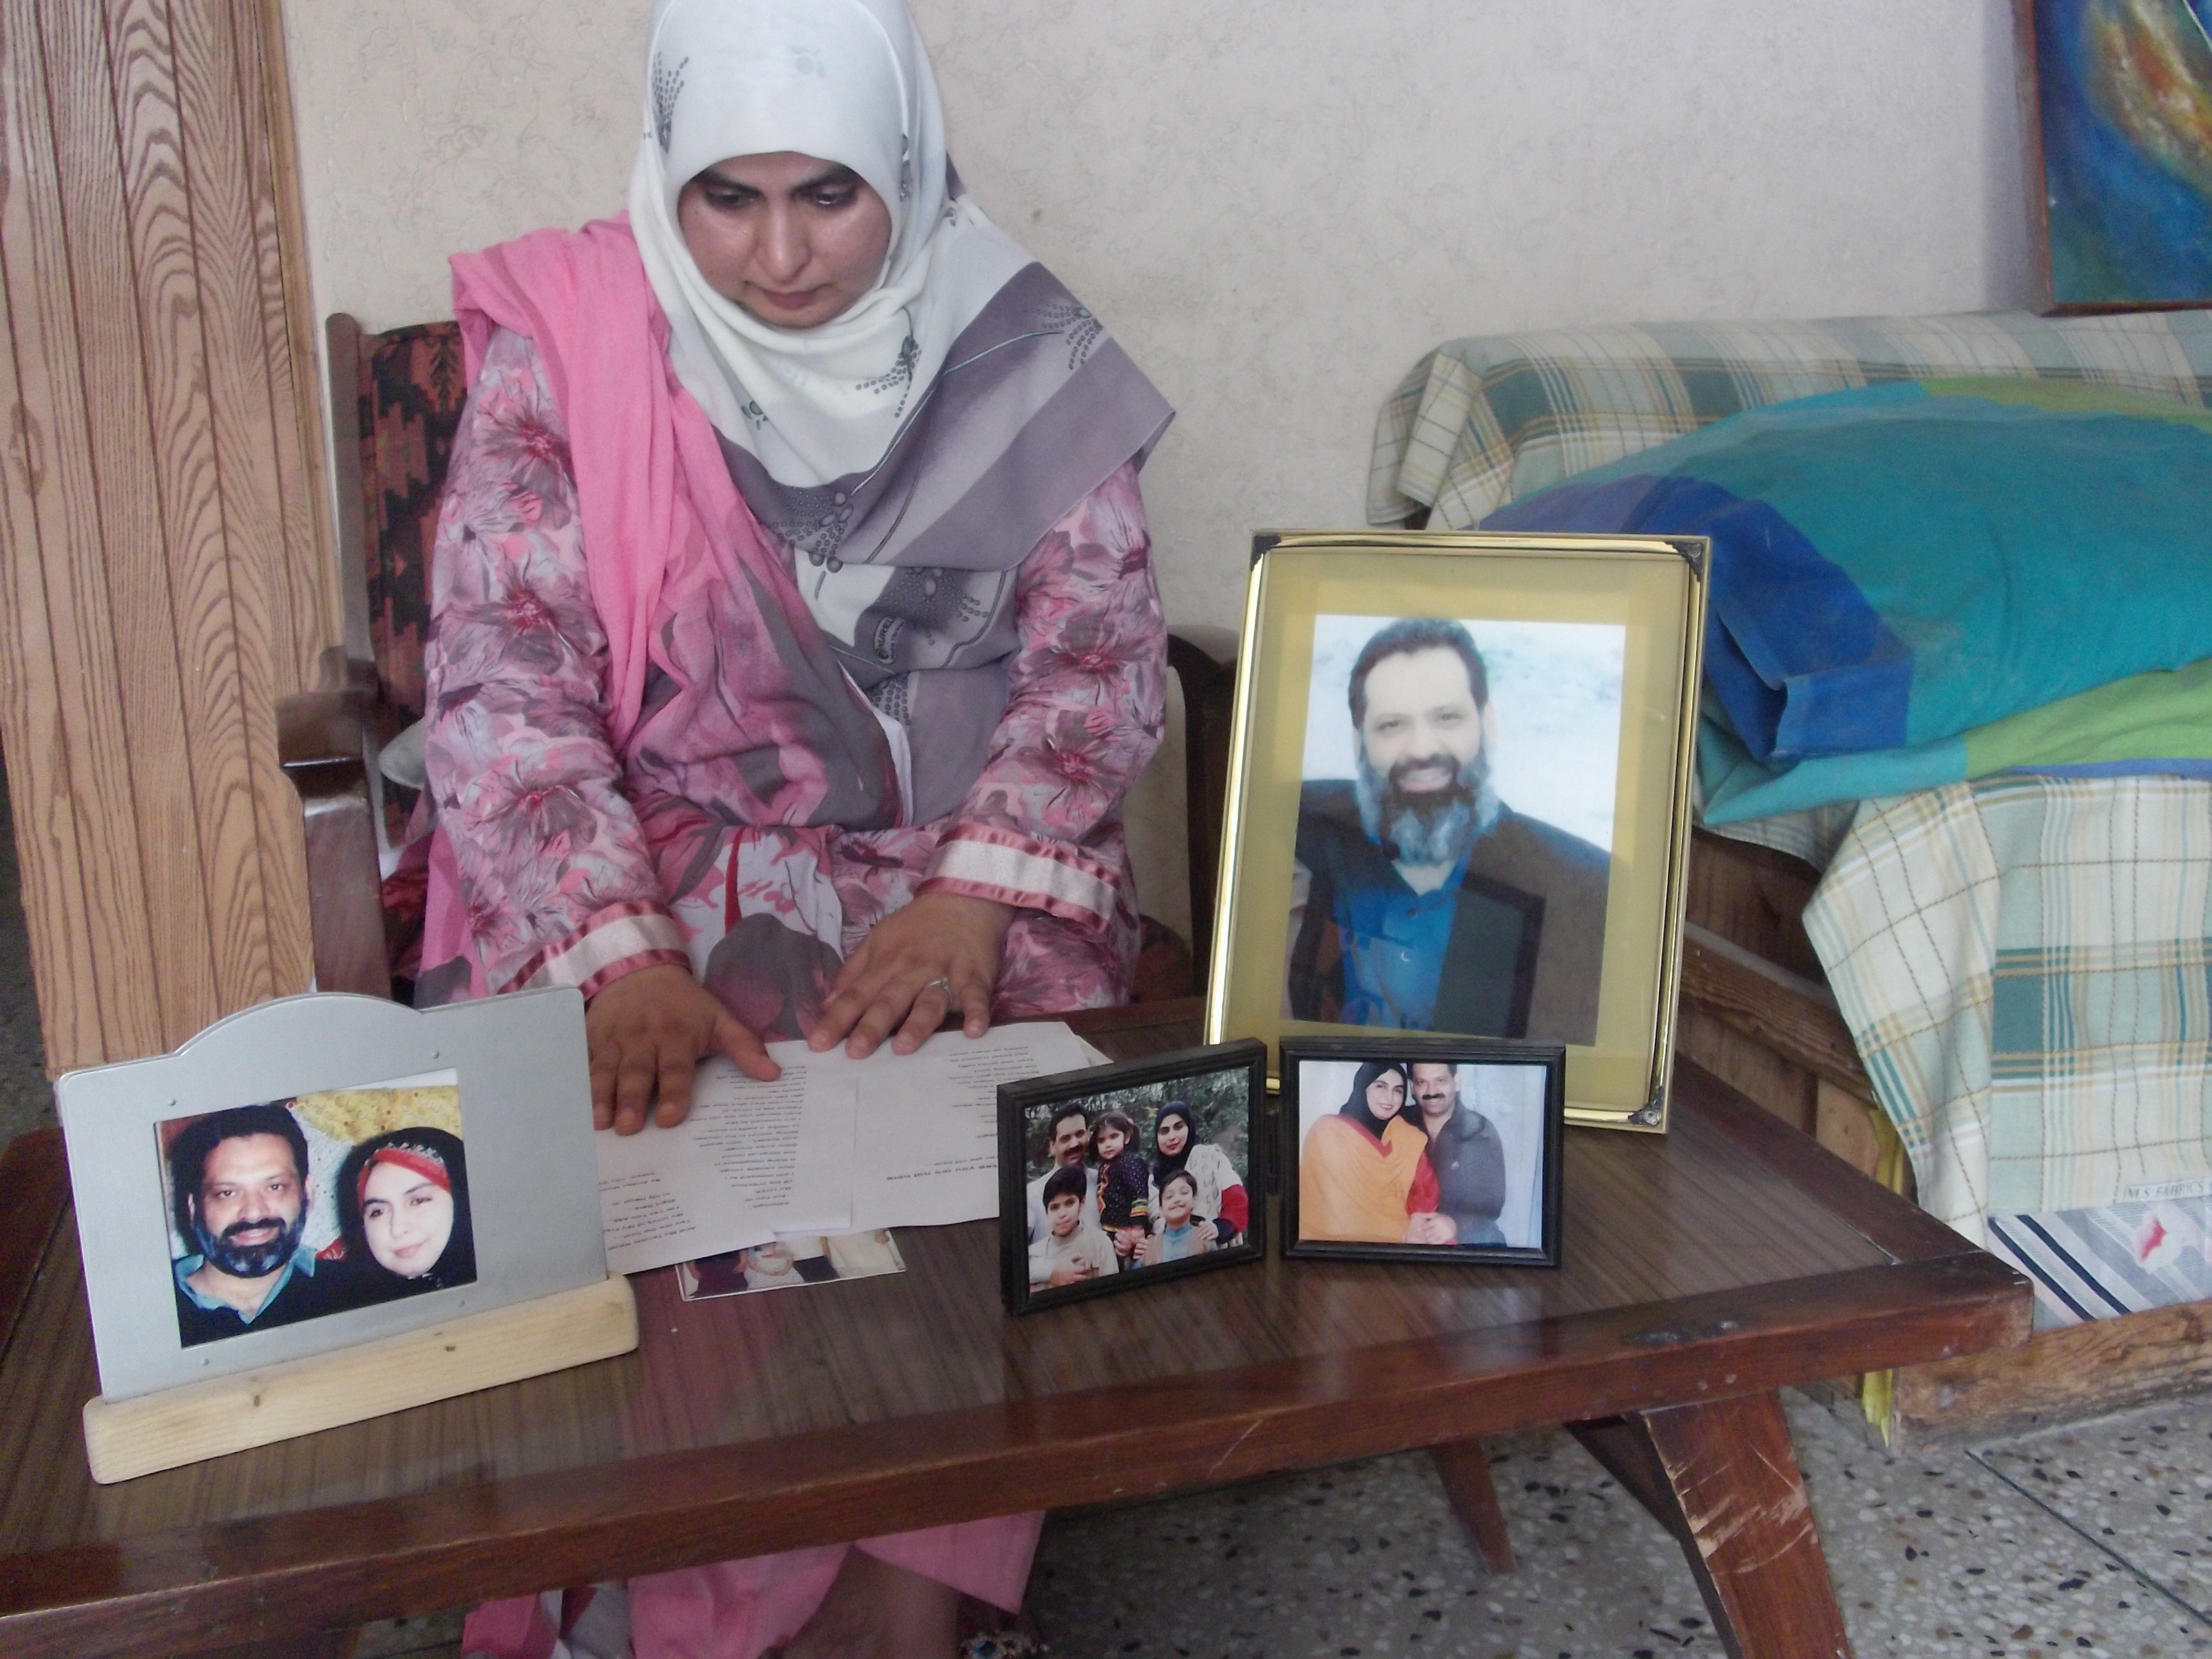 Amina Masood Janjua with photos of her husband, Masood Ahemd Janjua, a businessman from Rawalpindi.  Masood Janjua, along with his friend Faisal Faraz, an engineer from Lahore, were  forcibly disappeared? on 30 July 2005, at some point during a two-hour bus journey from Rawalpindi to Peshawar.  Their fate and whereabouts remain unknown.